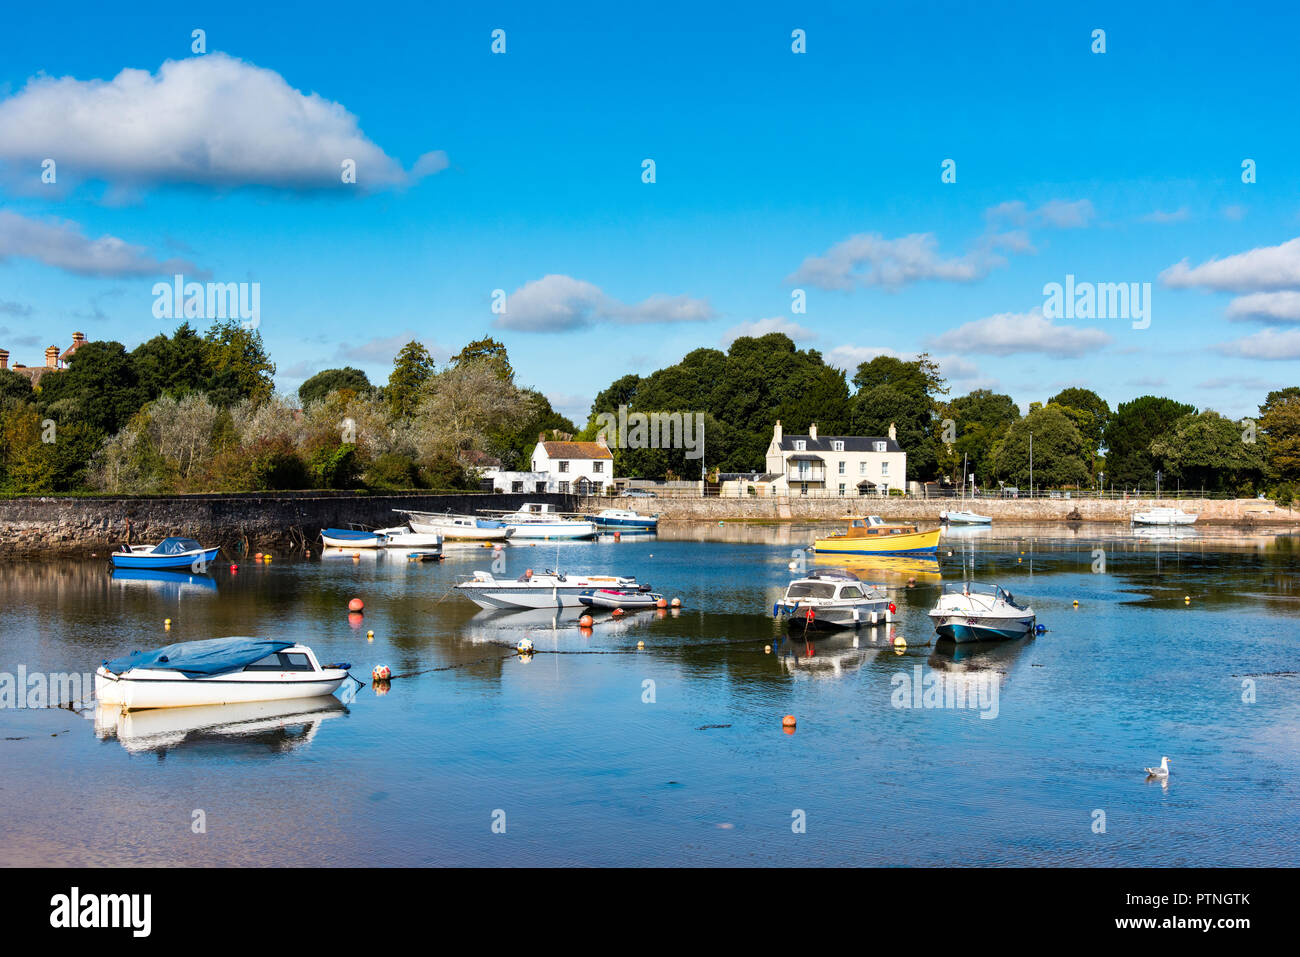 The harbour at Cockwood, on the River Exe Estuaty, near Starcross, Devon, UK - Stock Image